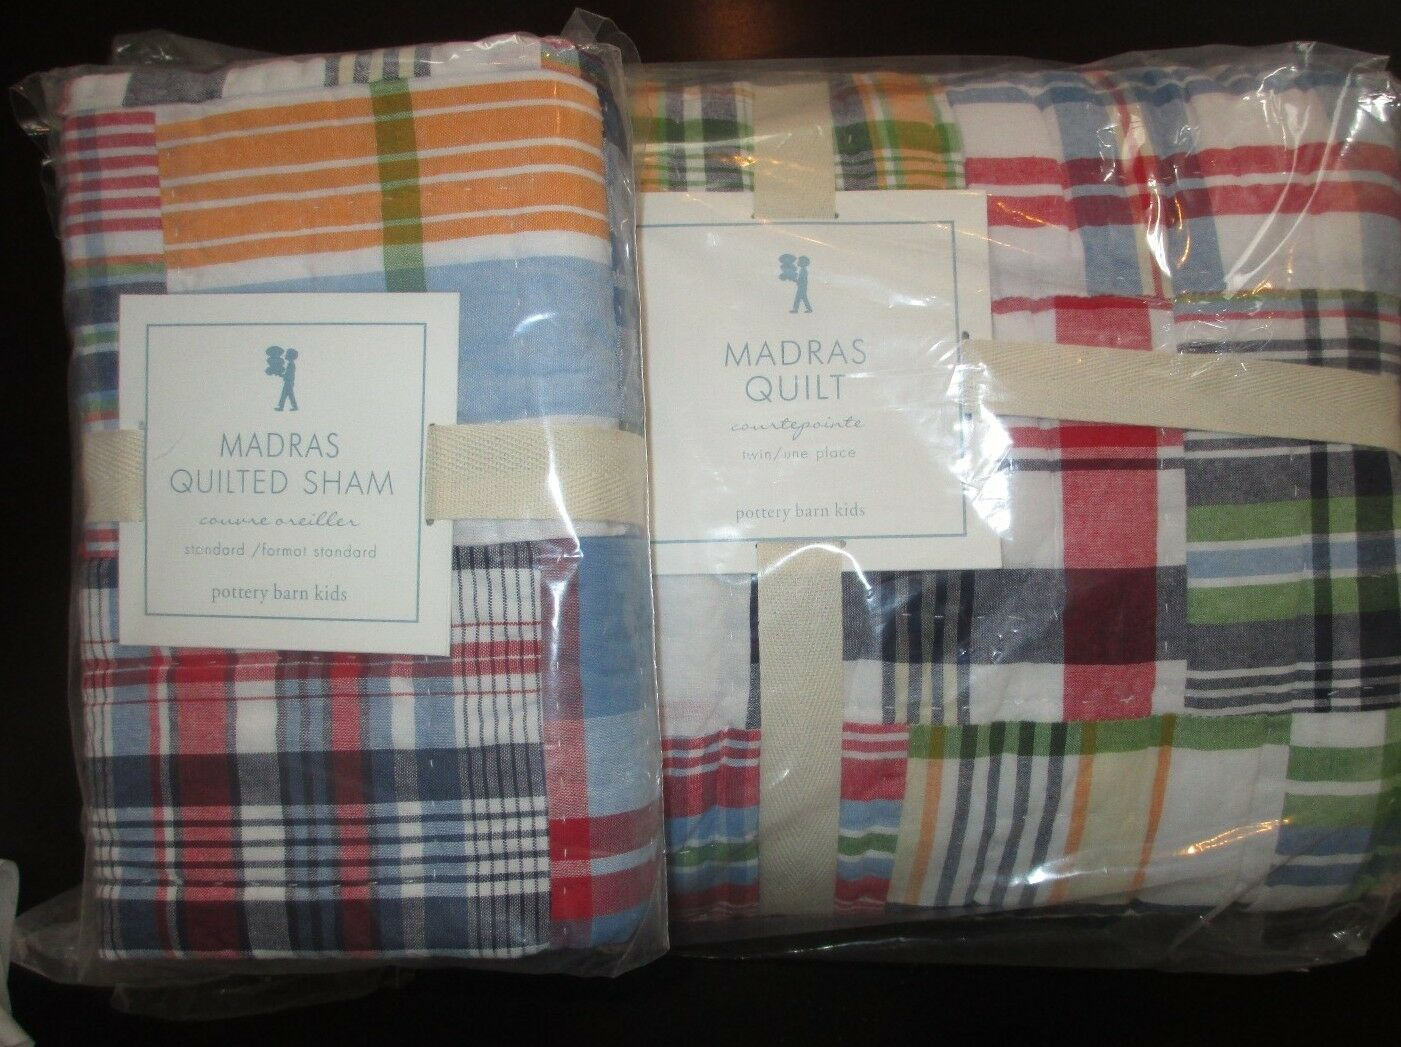 nwt pottery barn kids madras navy twin quilt standard. Black Bedroom Furniture Sets. Home Design Ideas